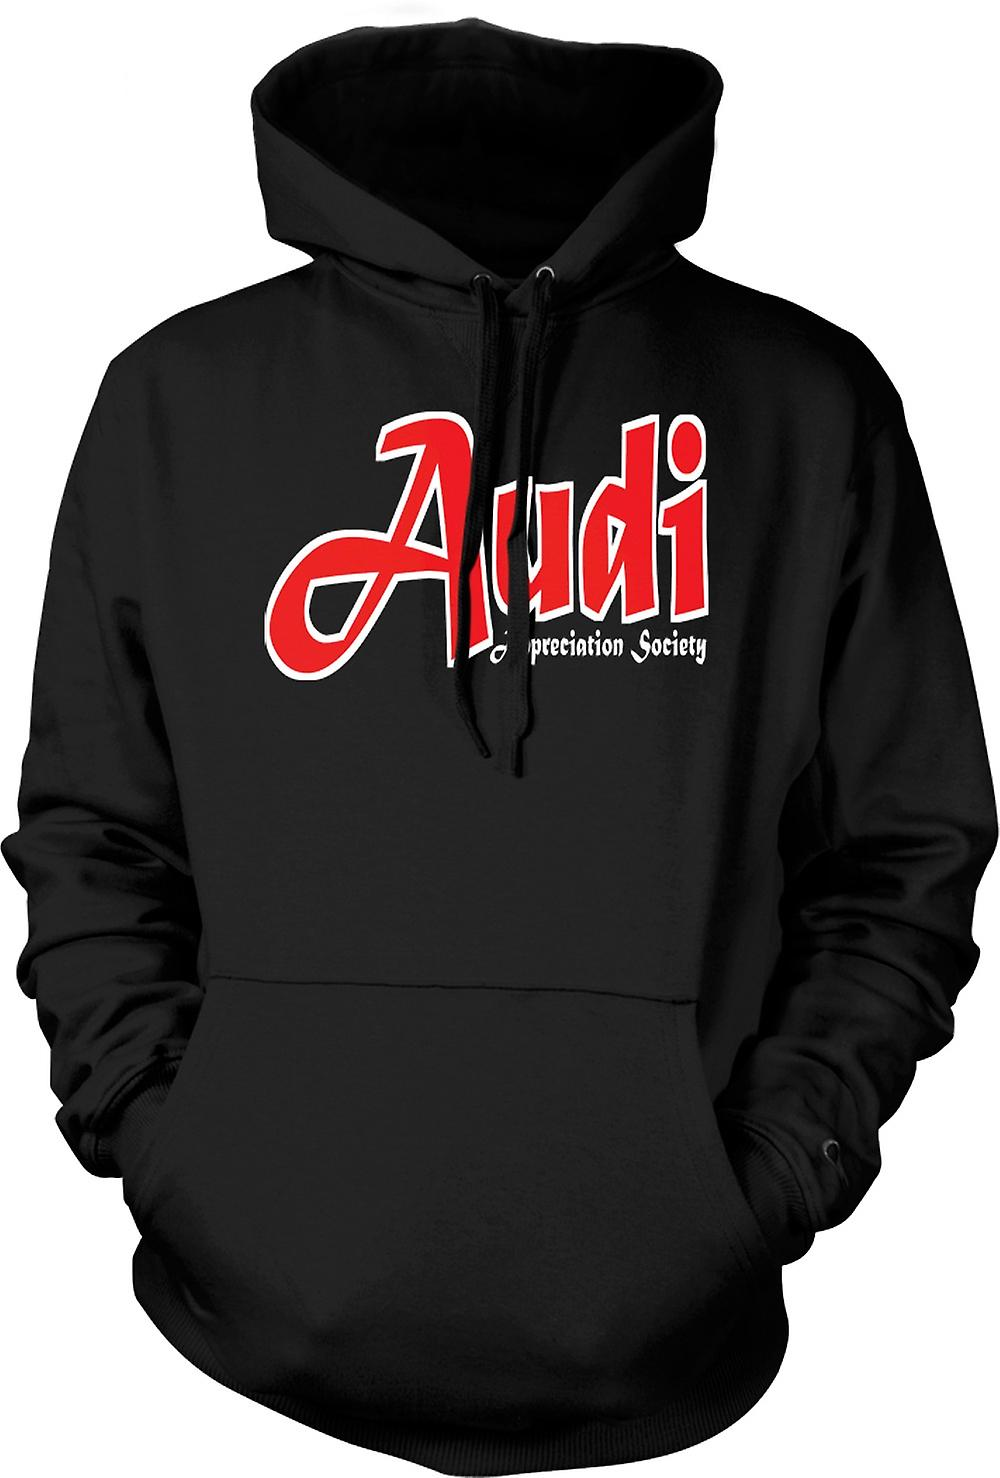 Mens Hoodie - Audi Appreciation Society